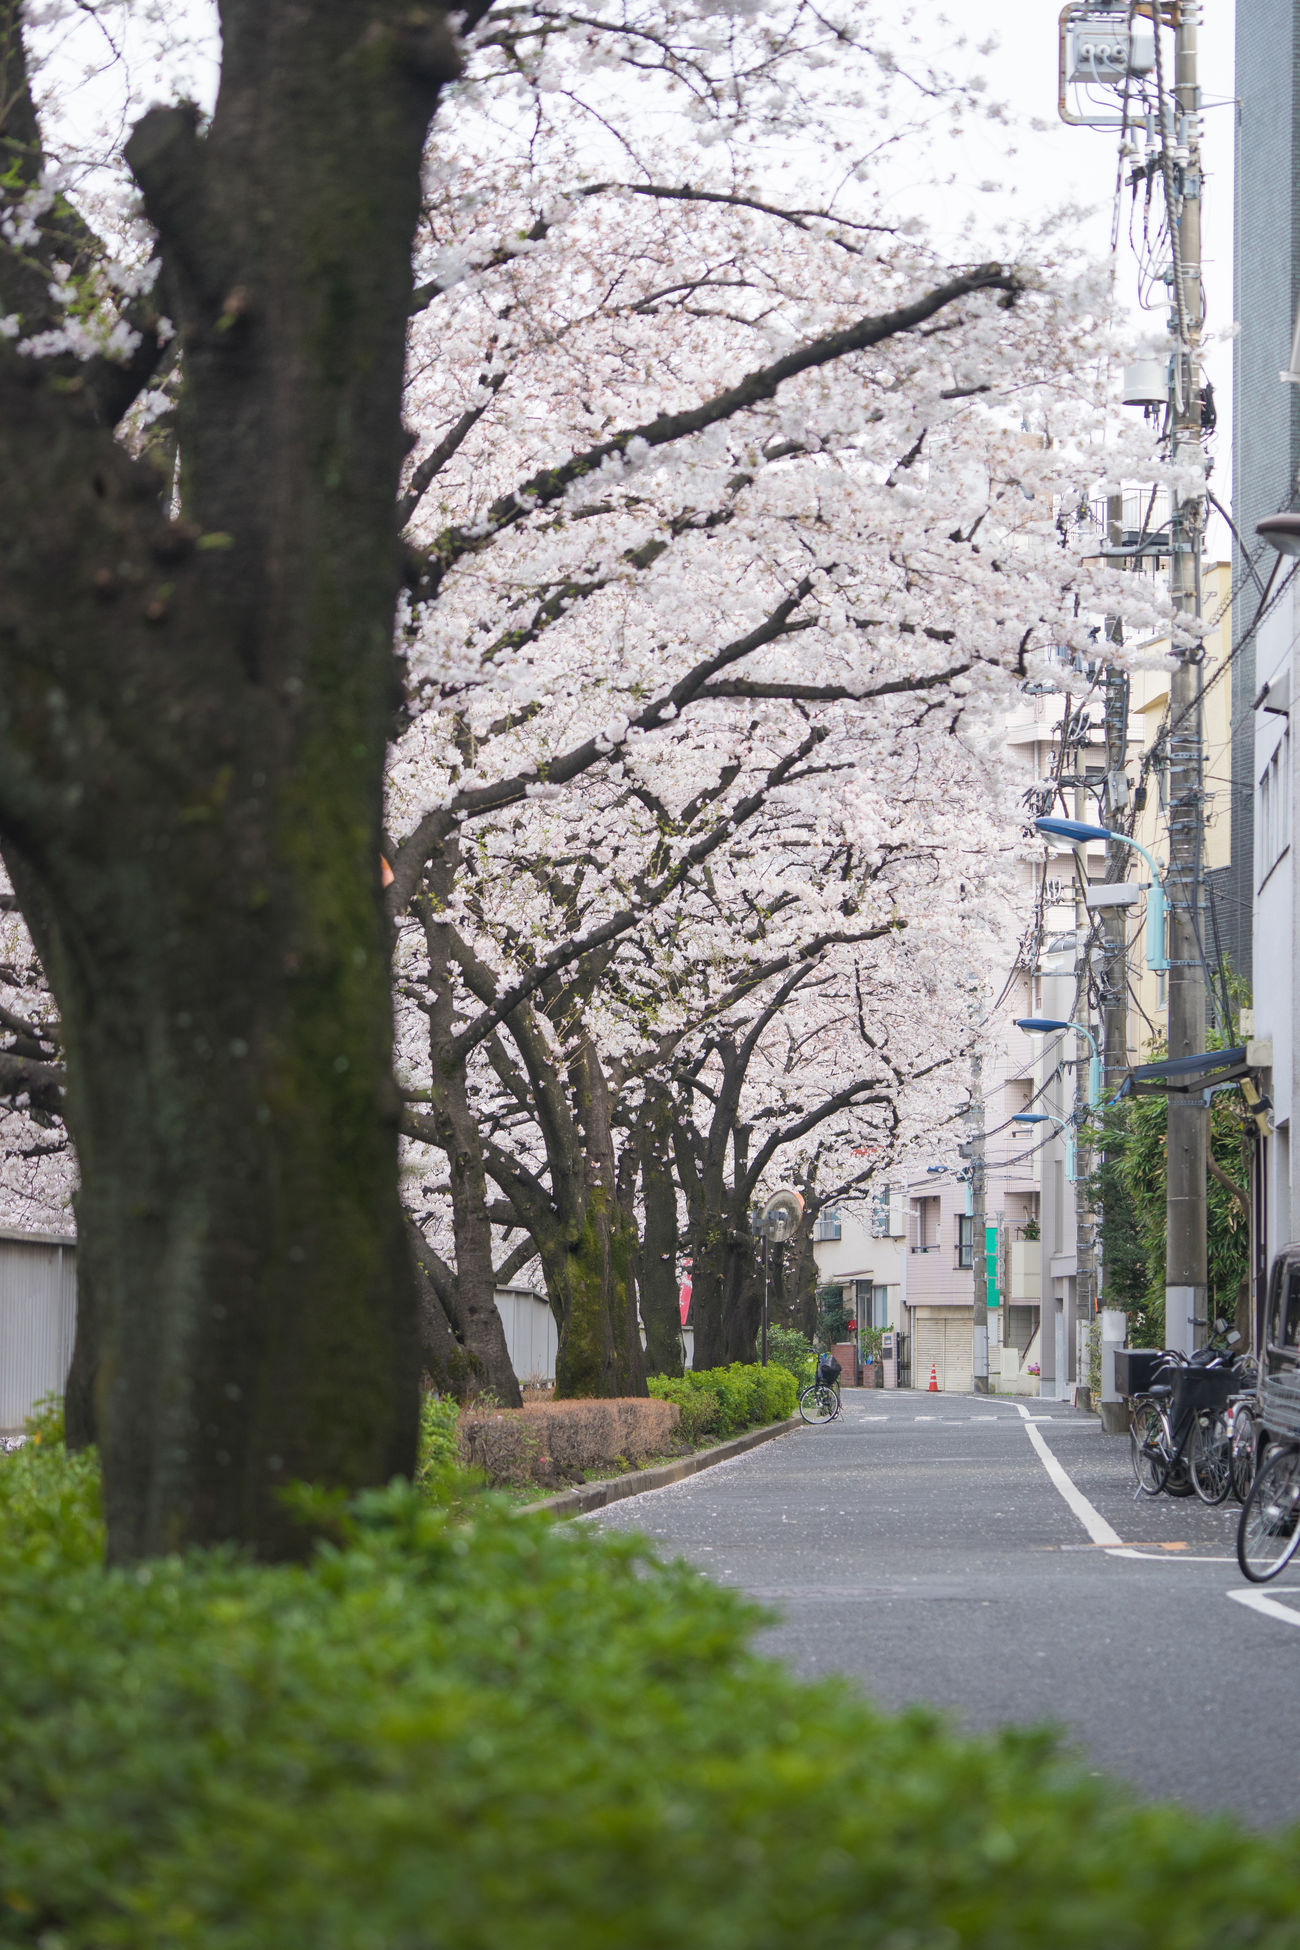 Sakura Way Architecture Beauty In Nature Branch Building Exterior Built Structure Cherry Blossom Cherry Blossoms City Day Flower Fragility Growth Japan Japan Photography Japanese  Nature No People Outdoors River Road Sakura The Way Forward Transportation Tree Waseda